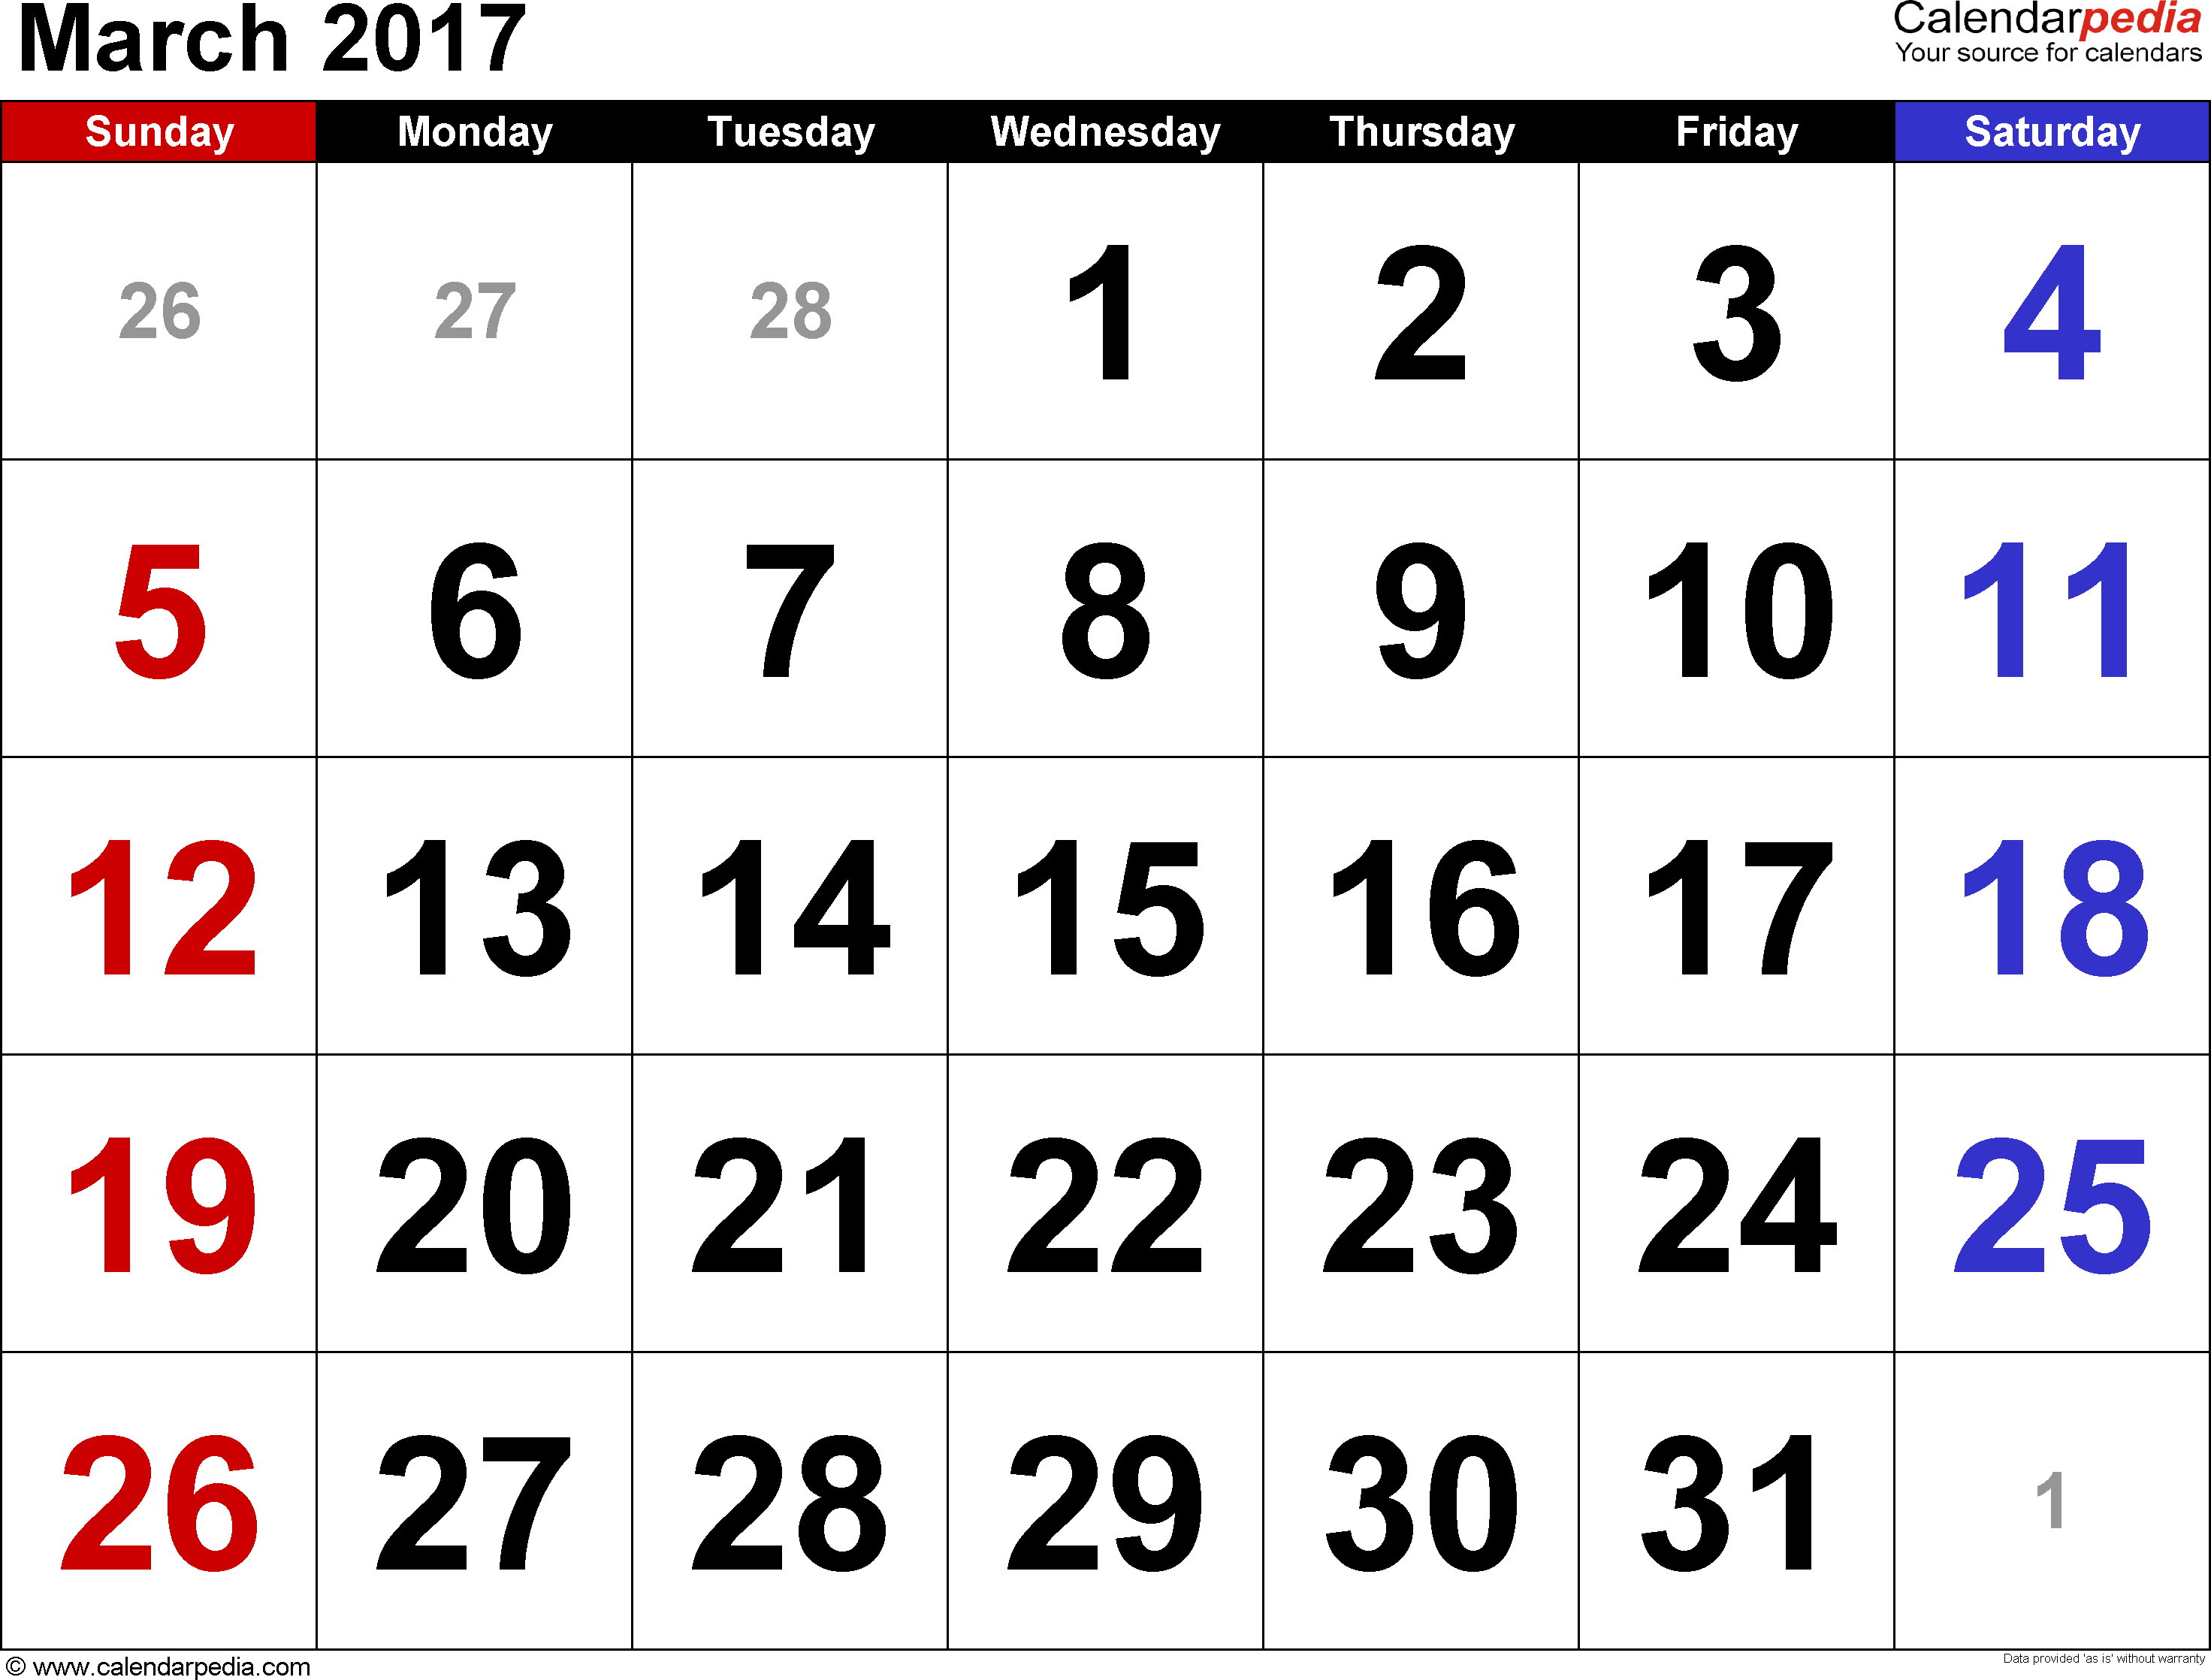 March 2017 calendar, landscape orientation, large numerals, available as printable templates for Word, Excel and PDF